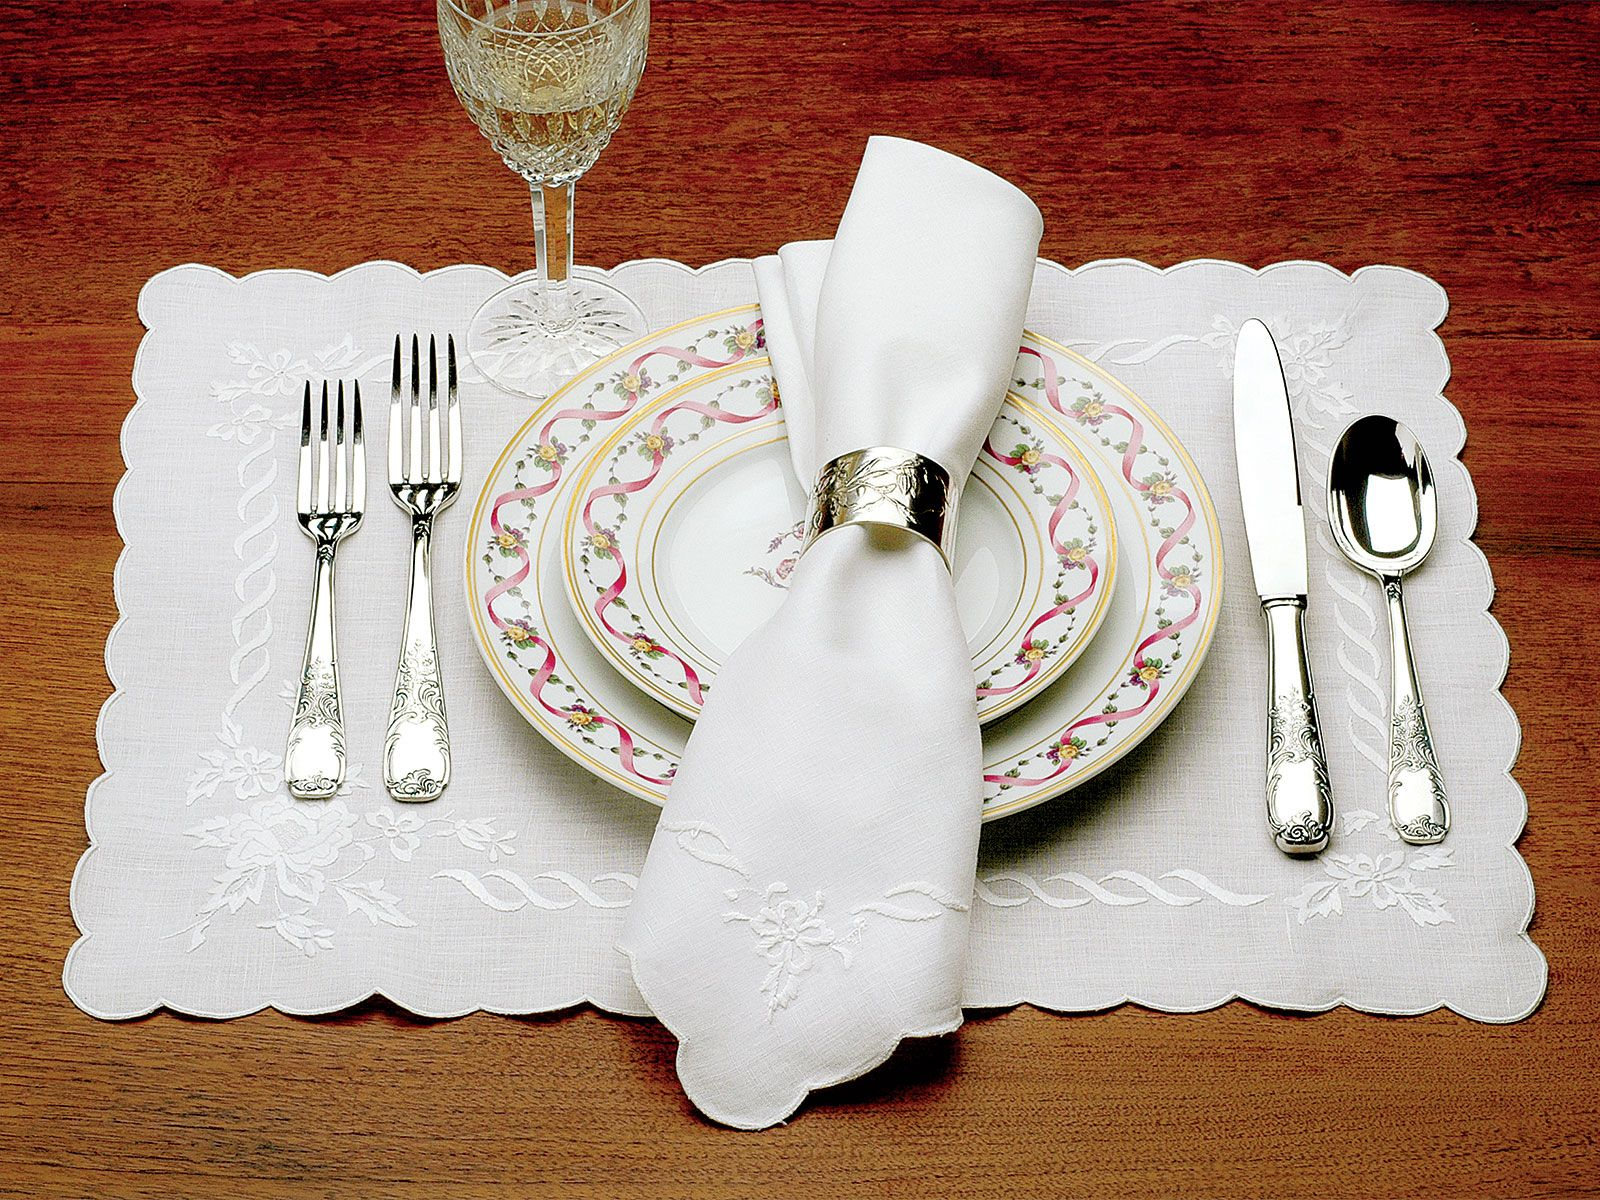 Artistico   Fine Table Linens   Incomparably Elegant Dining Is Assured When  Each Place Setting Is